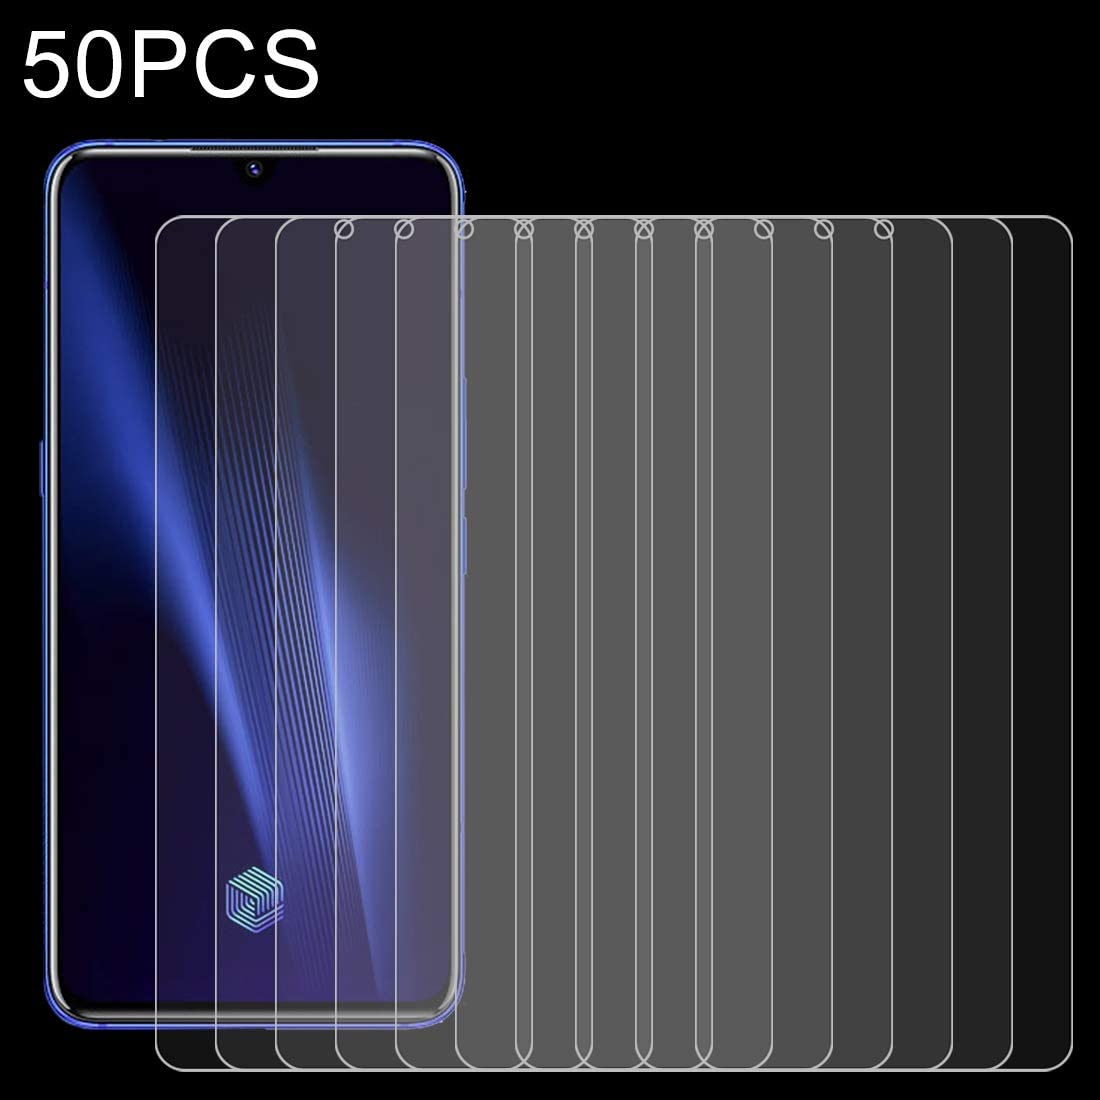 GzPuluz Glass Protector Film for Vivo iQOO Pro 50 PCS 0.26mm 9H 2.5D Tempered Glass Film